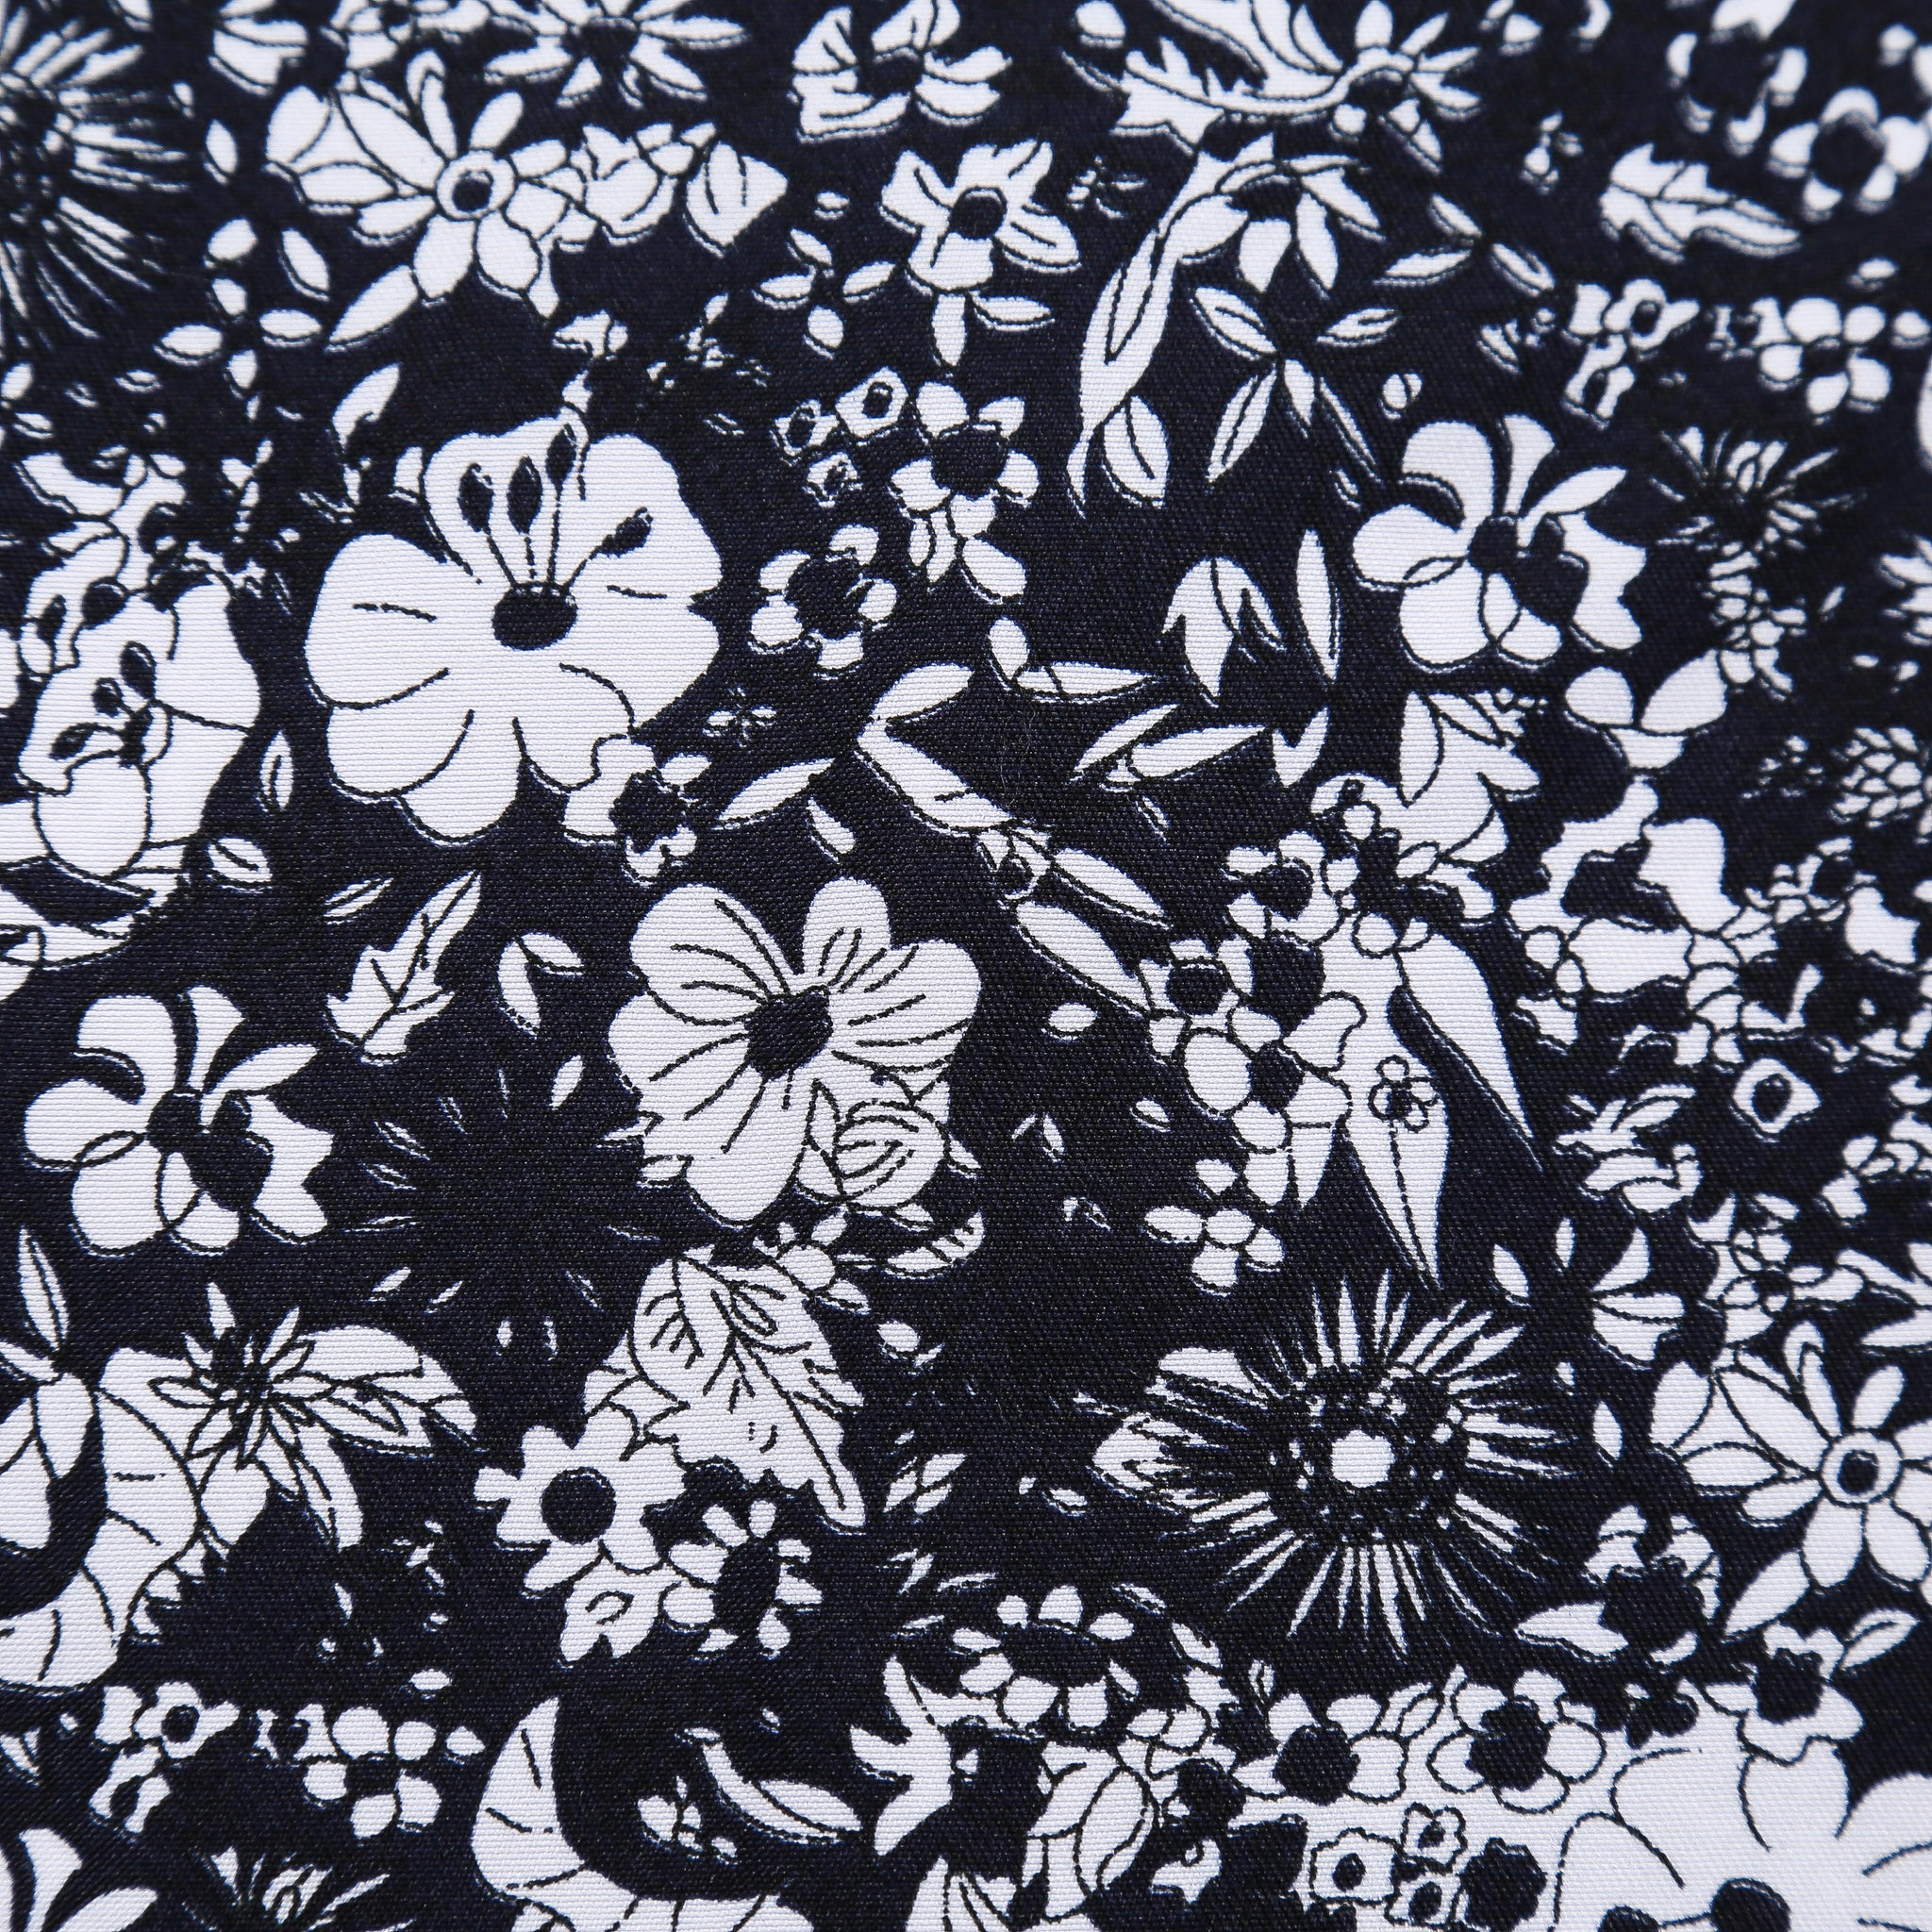 Black and white flower prints choice image flower decoration ideas black and white flower prints images flower decoration ideas black and white flower prints image collections mightylinksfo